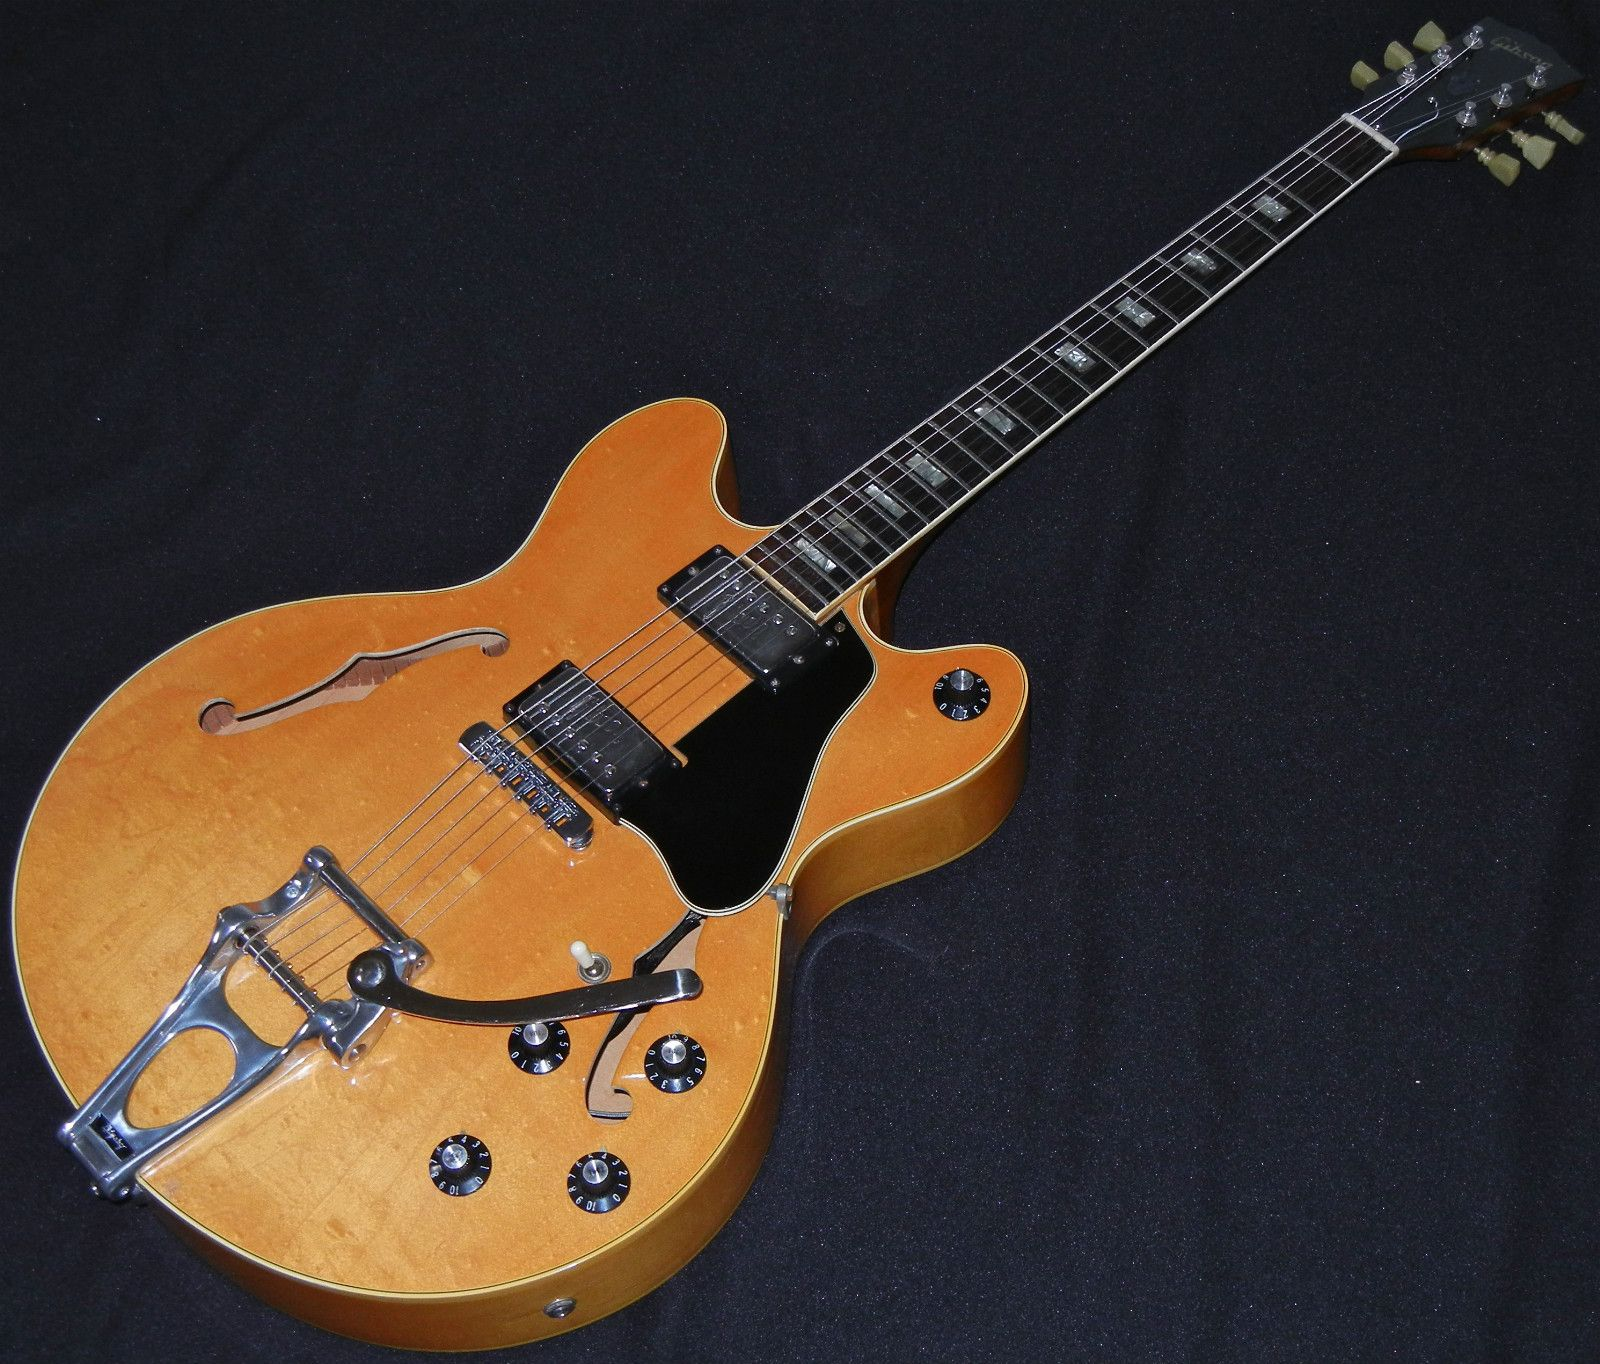 Gibson Es 150 Dc Vintage 1972 Bigsby Hollowbody No Reserve Classic Guitar Gibson Beautiful Guitars